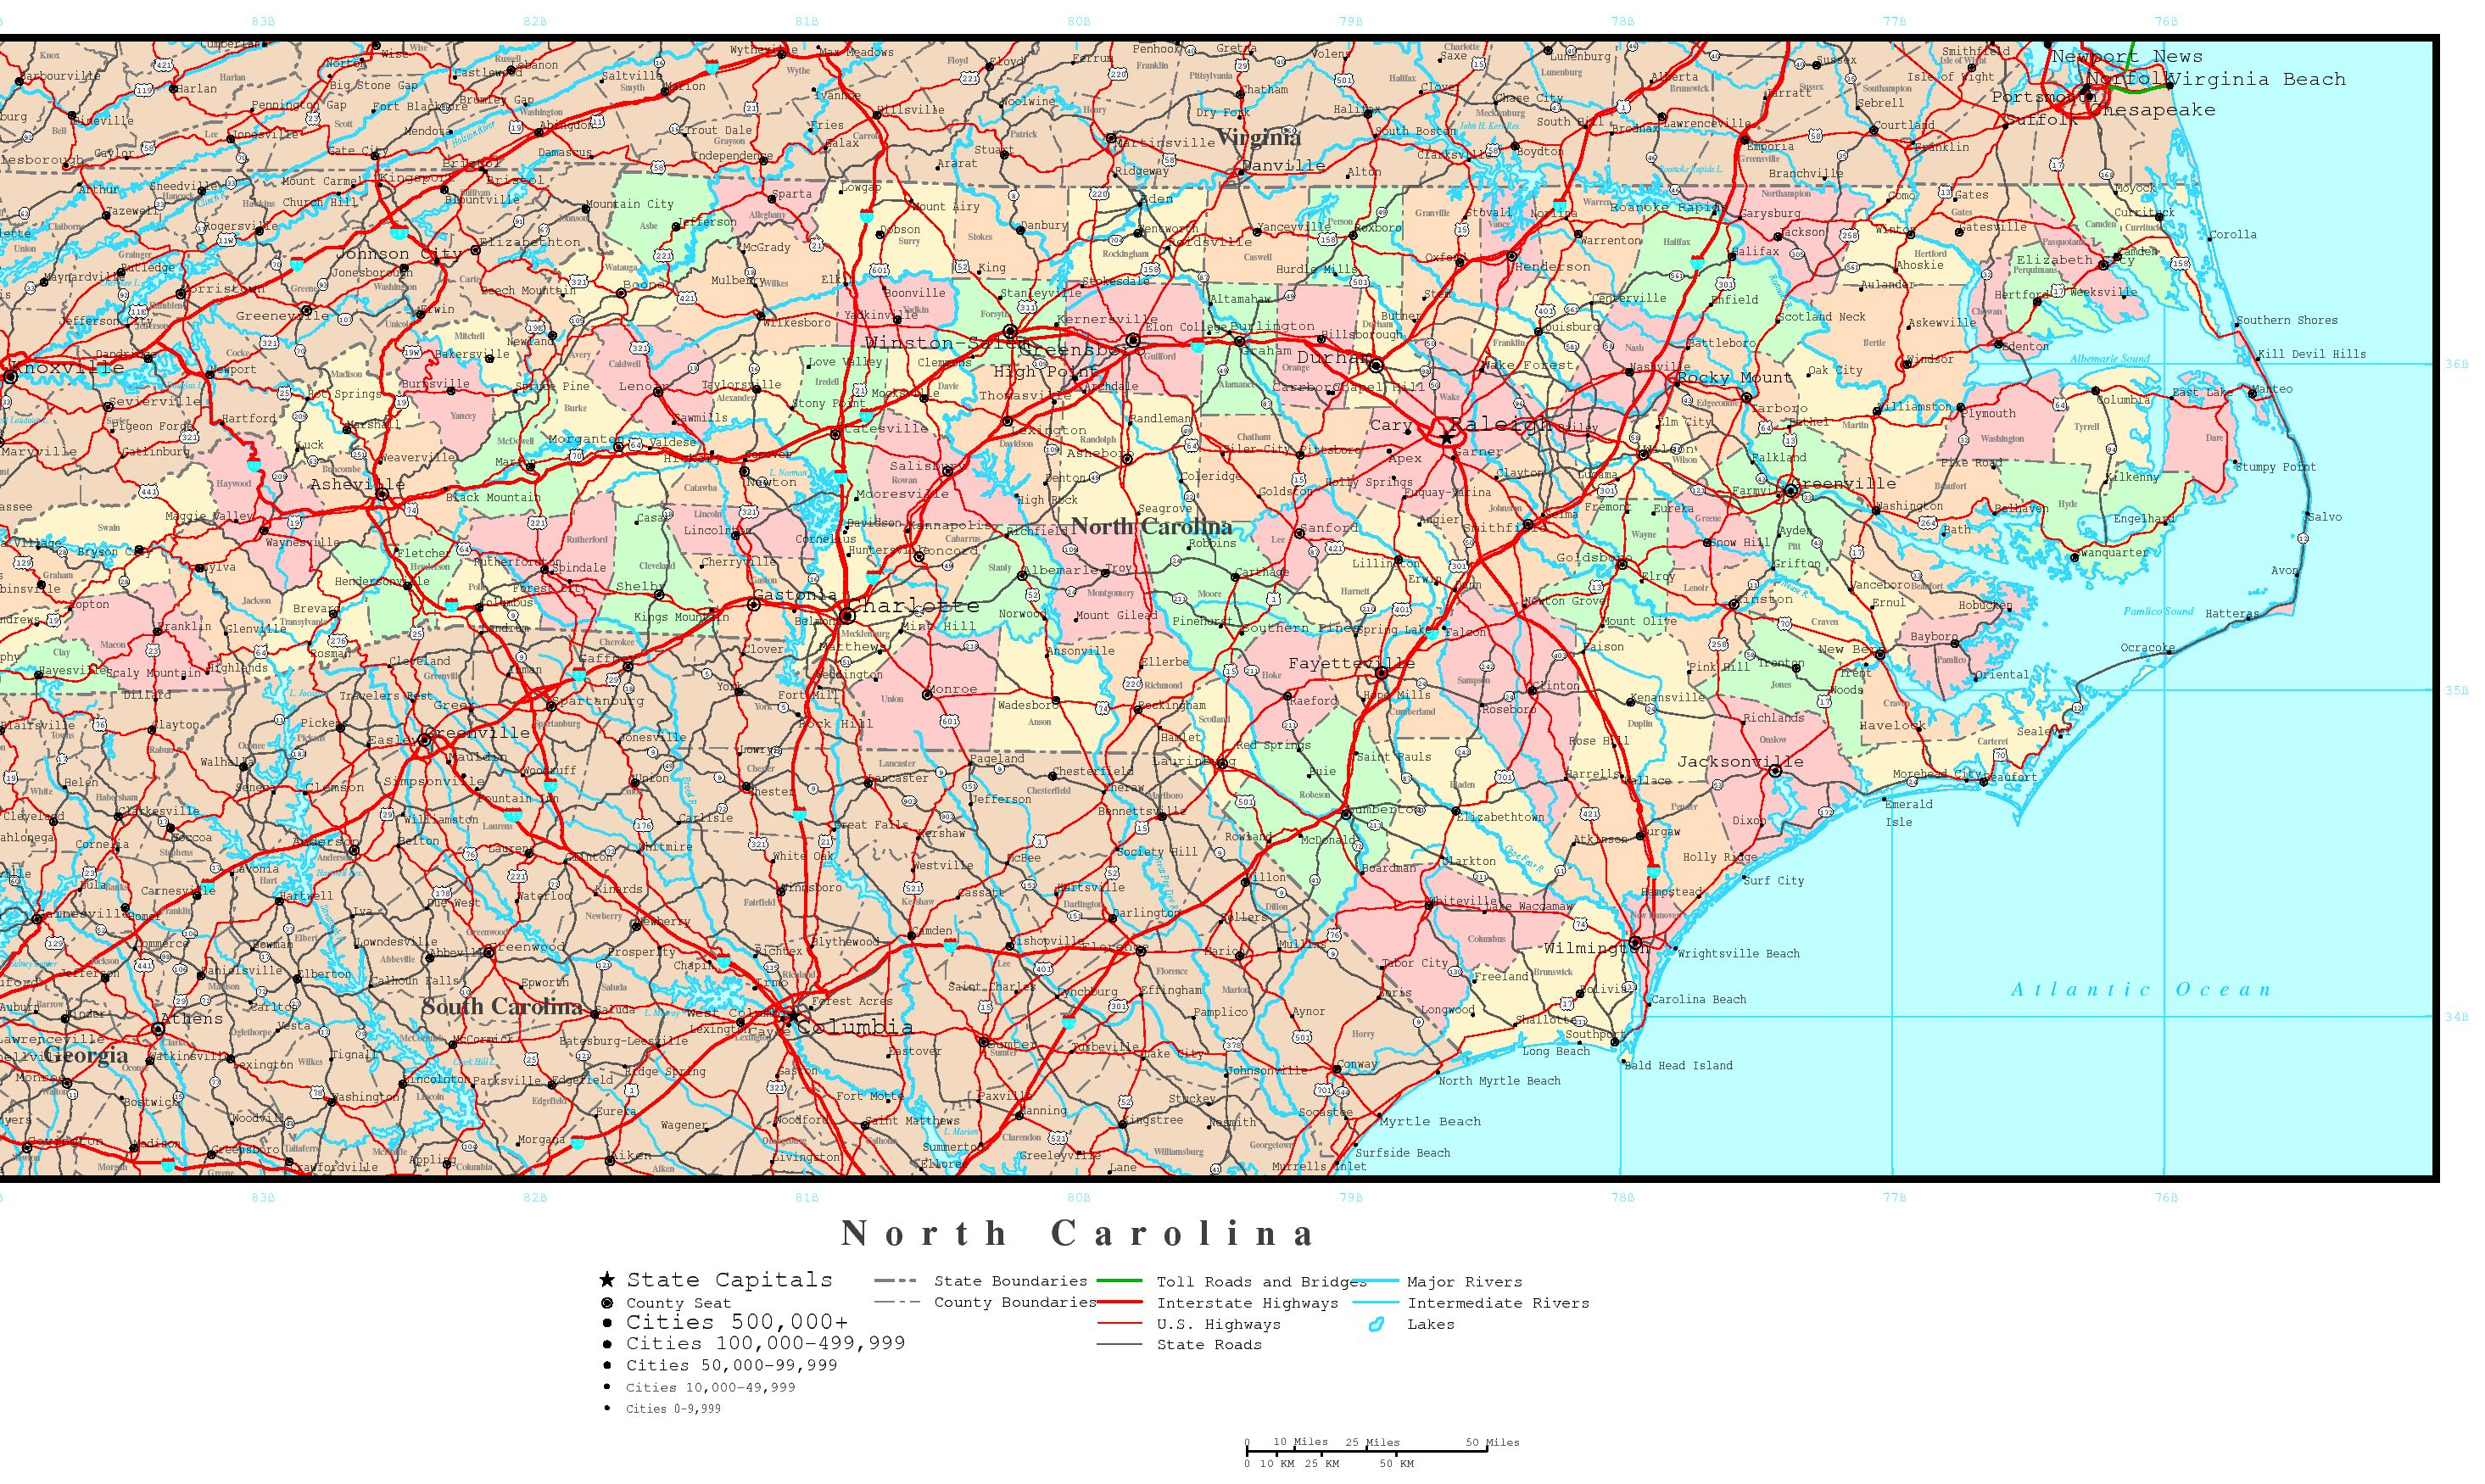 North Carolina Road Map With Cities afputracom